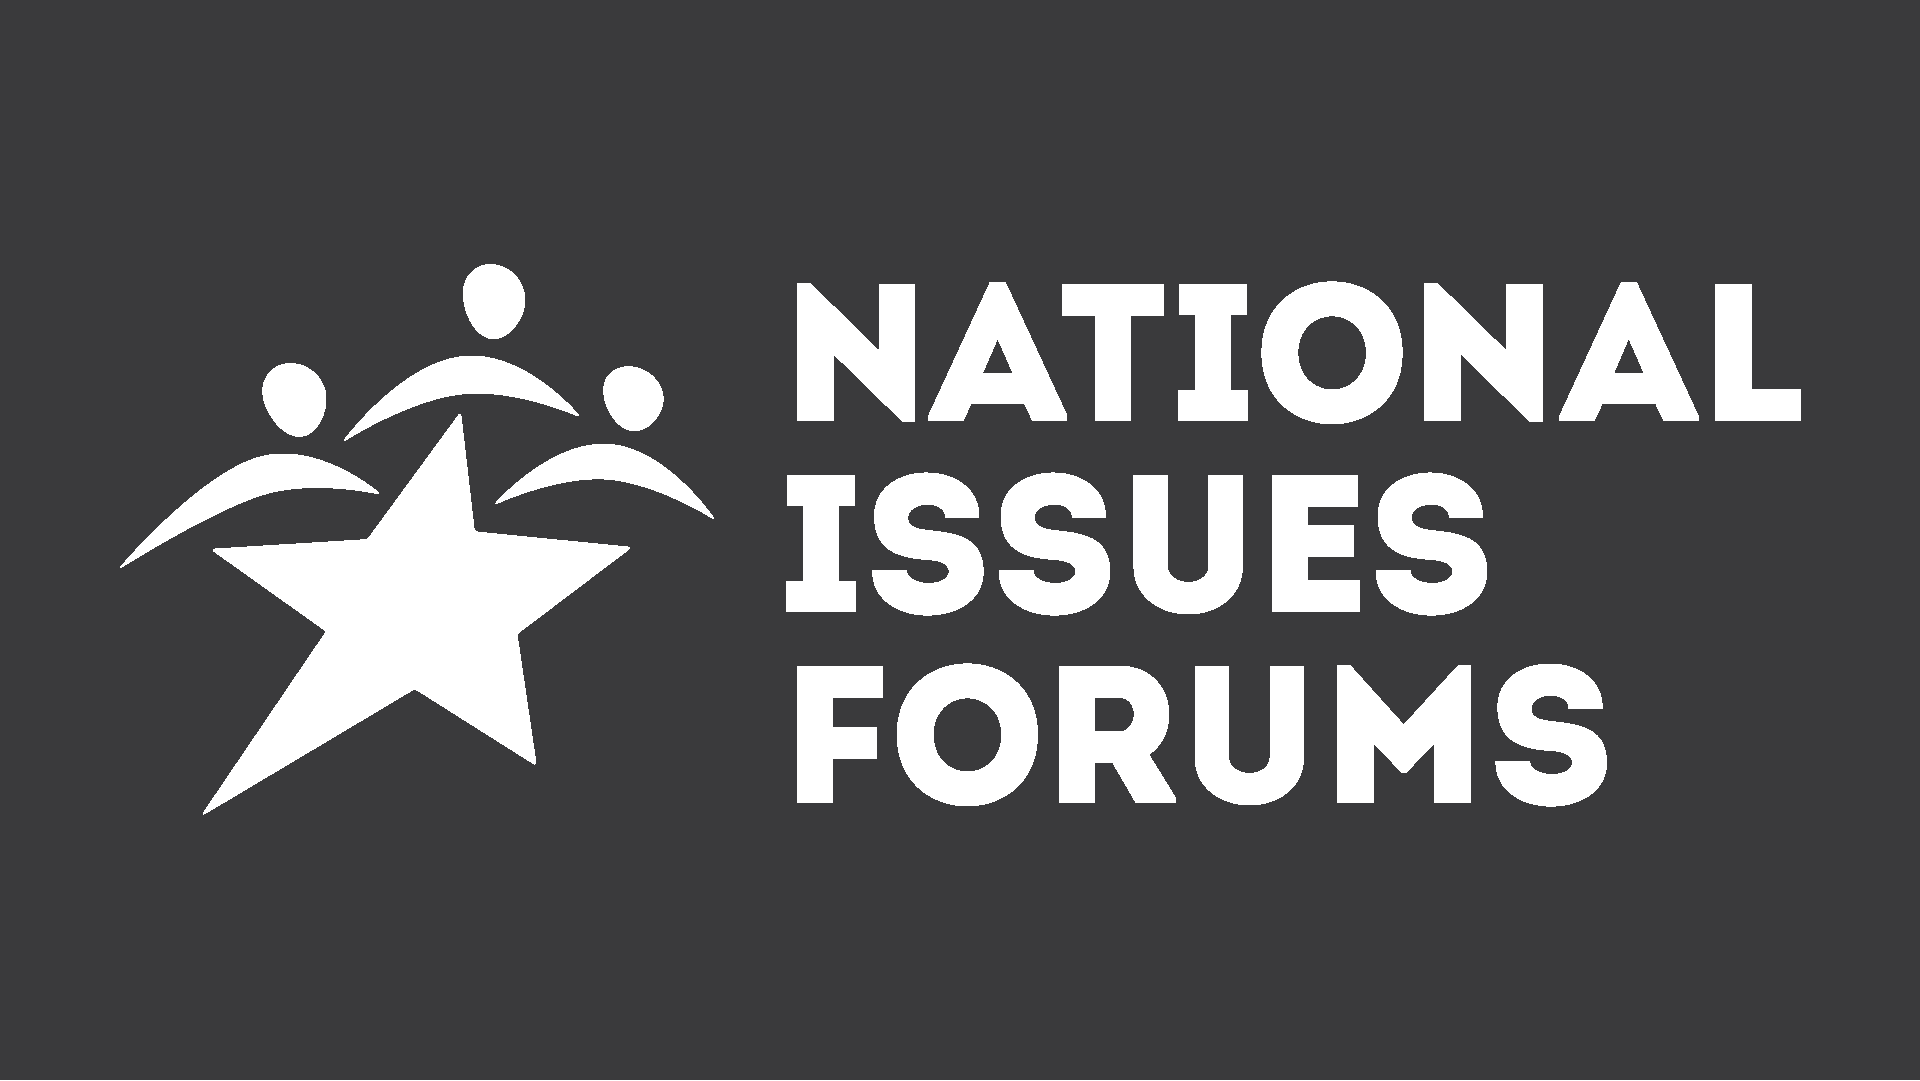 National Issues Forum logo